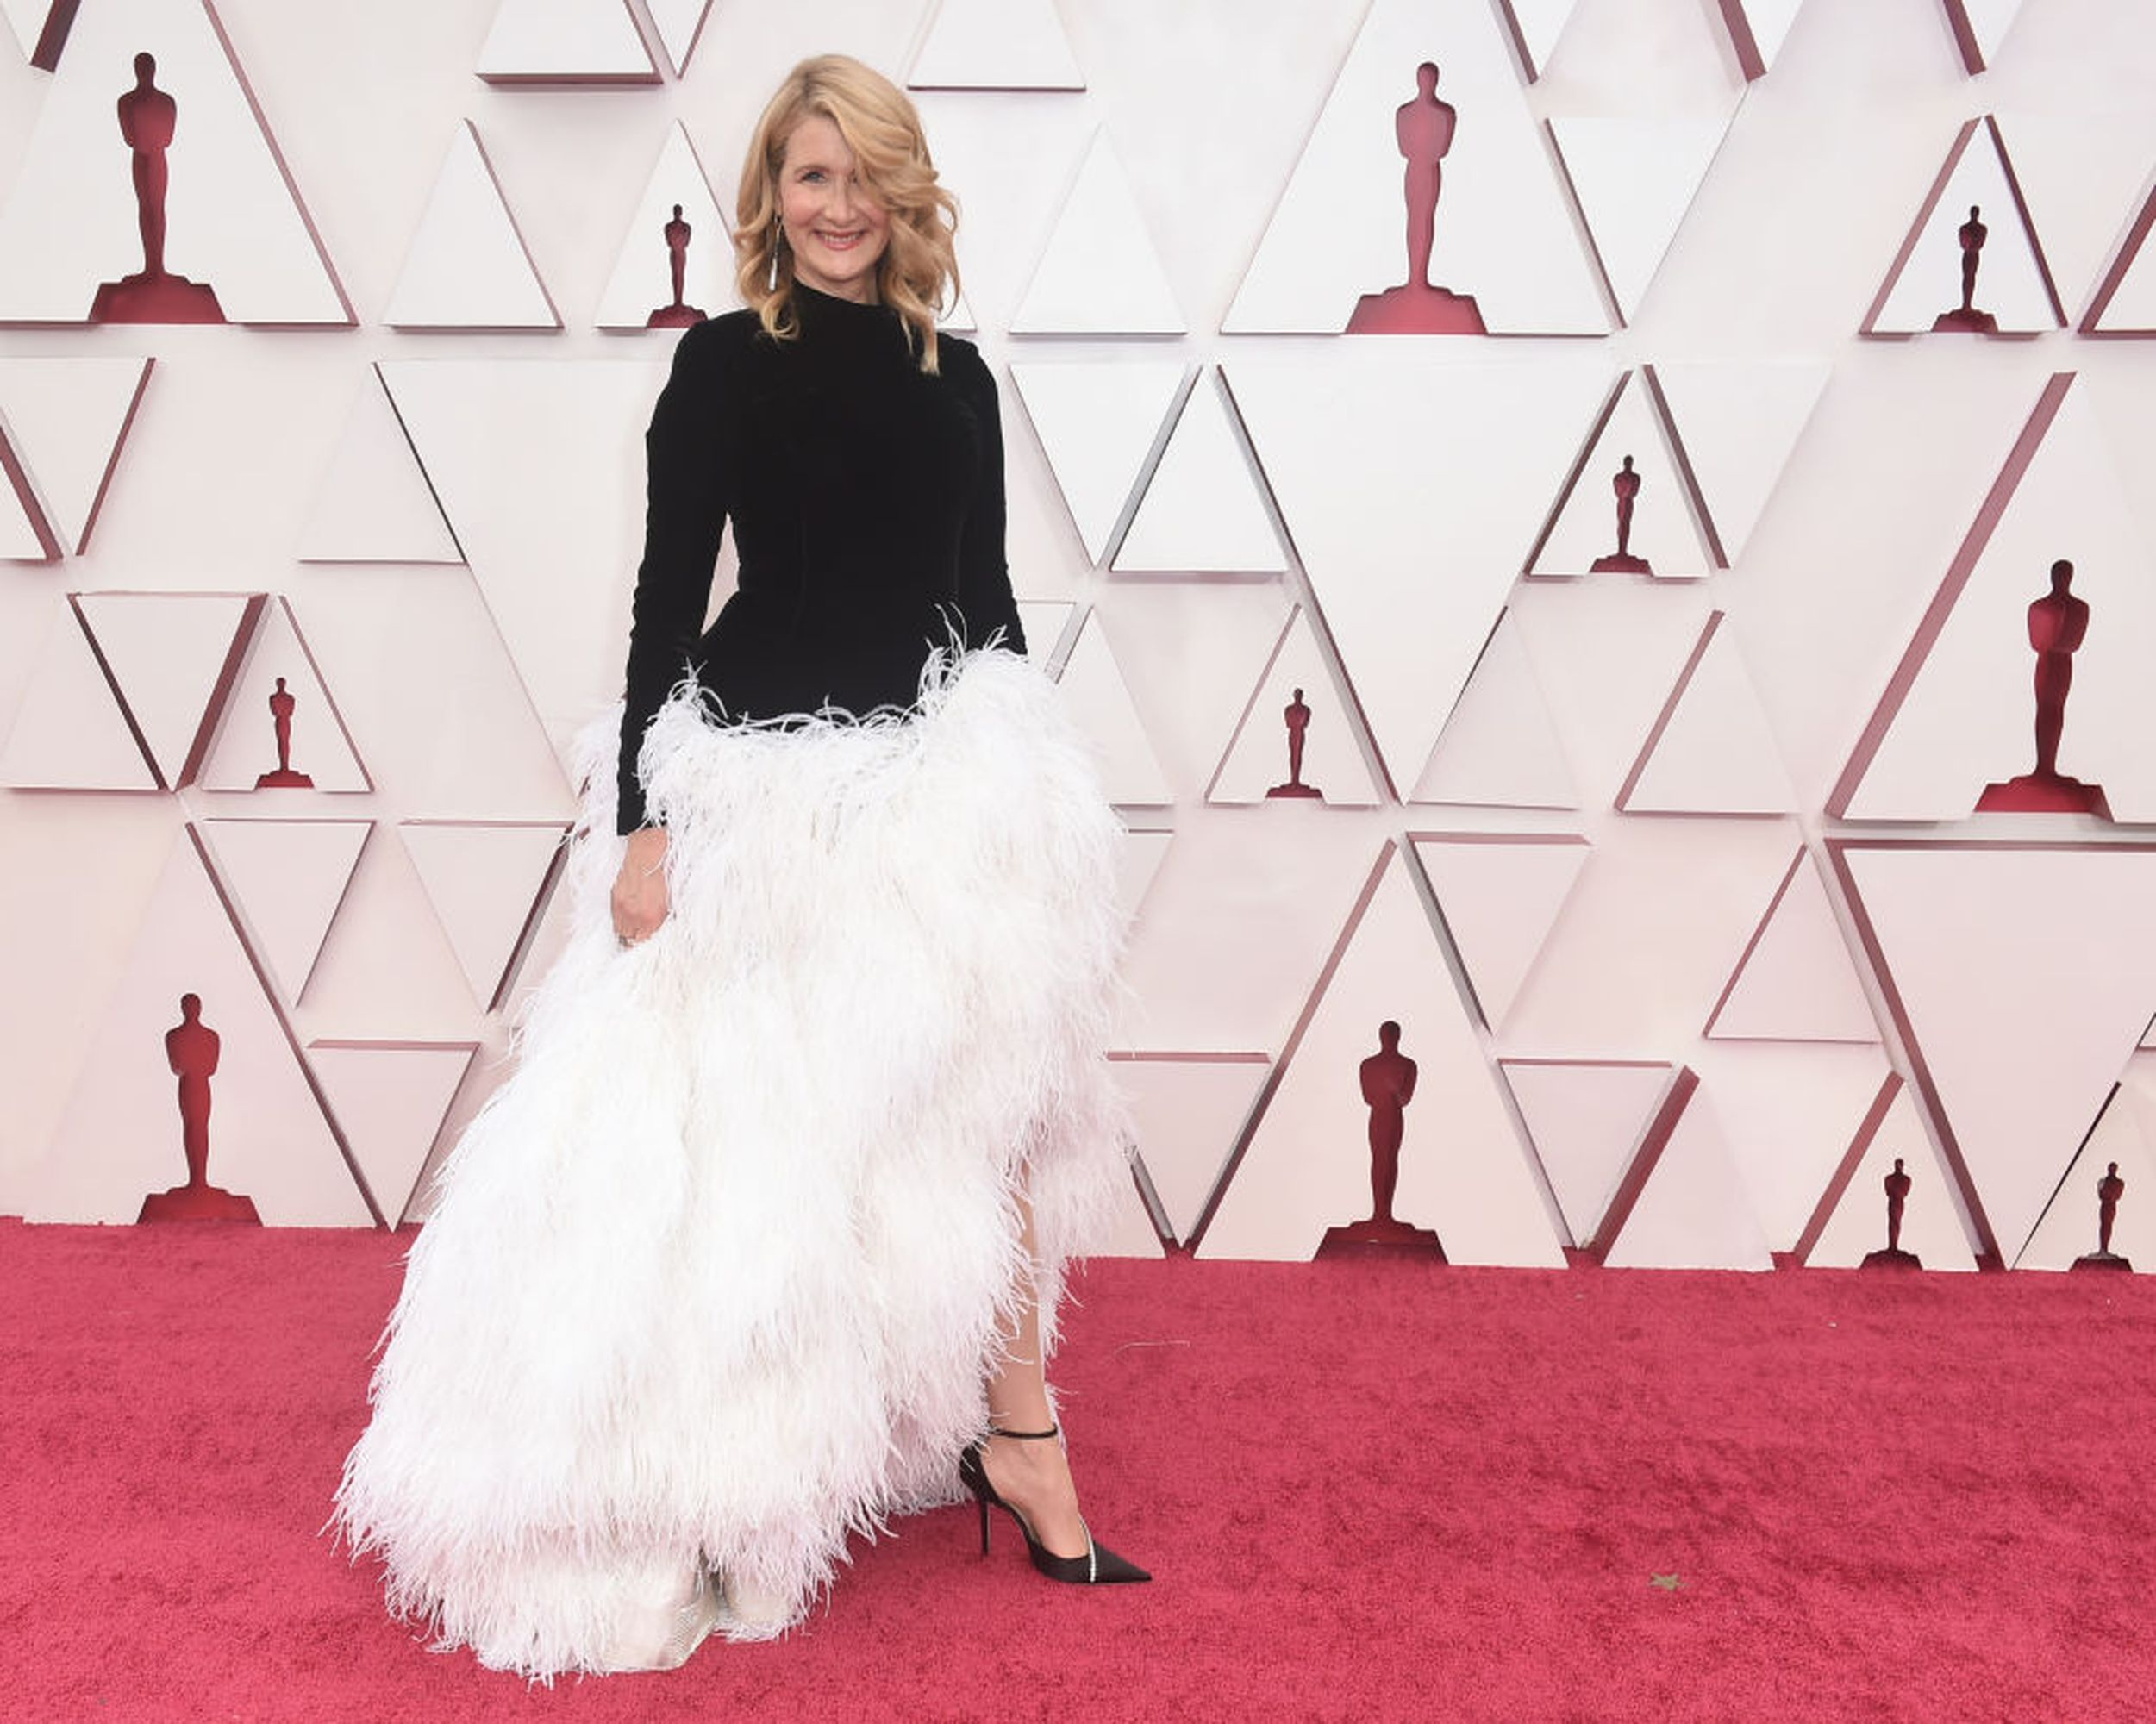 THE OSCARS® - The 33rd Academy Awards will take place on Sunday 25 April 2021 at Union Station Los Angeles, the Dolby Theater at Hollywood & Highland Center® in Hollywood and international locations via satellite.